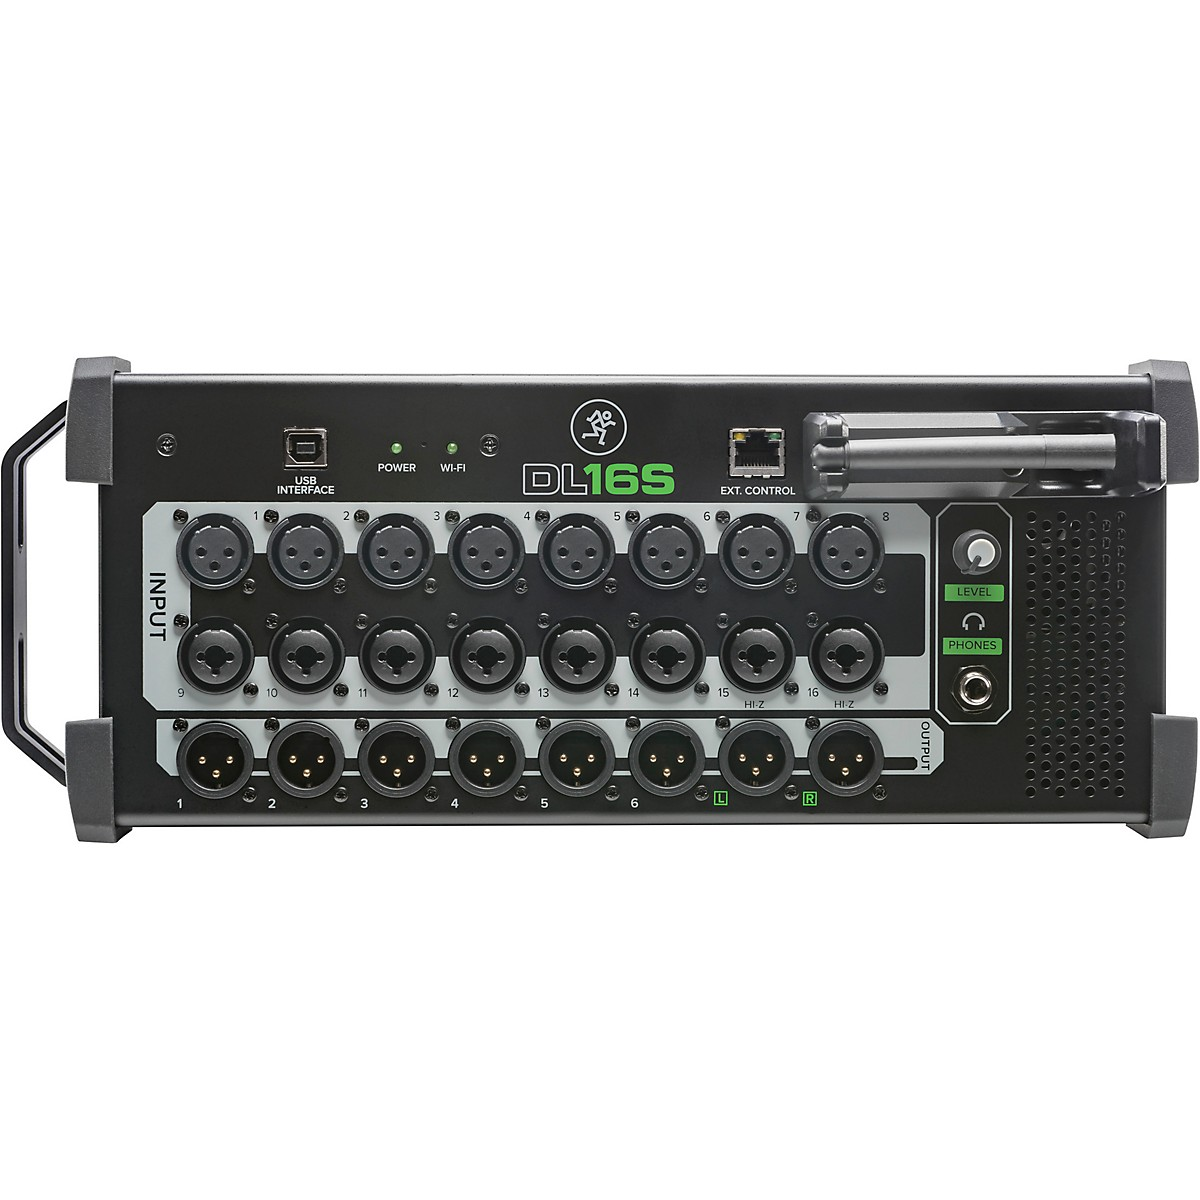 Mackie DL16S 16-Channel Wireless Digital Mixer with WiFi